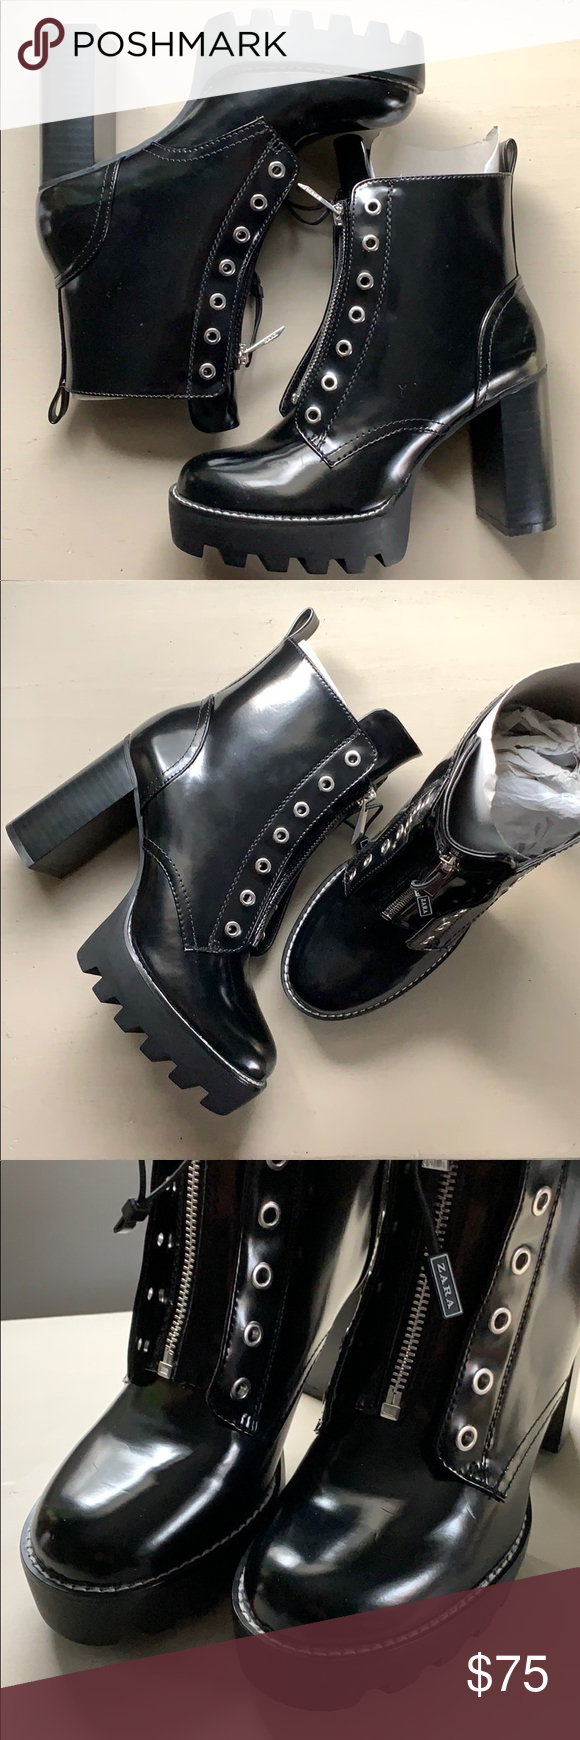 541b10a7b7cd Zara chunky cleated platform zipper ankle boots Amazing   super trendy tall  cleated sole chunky platform